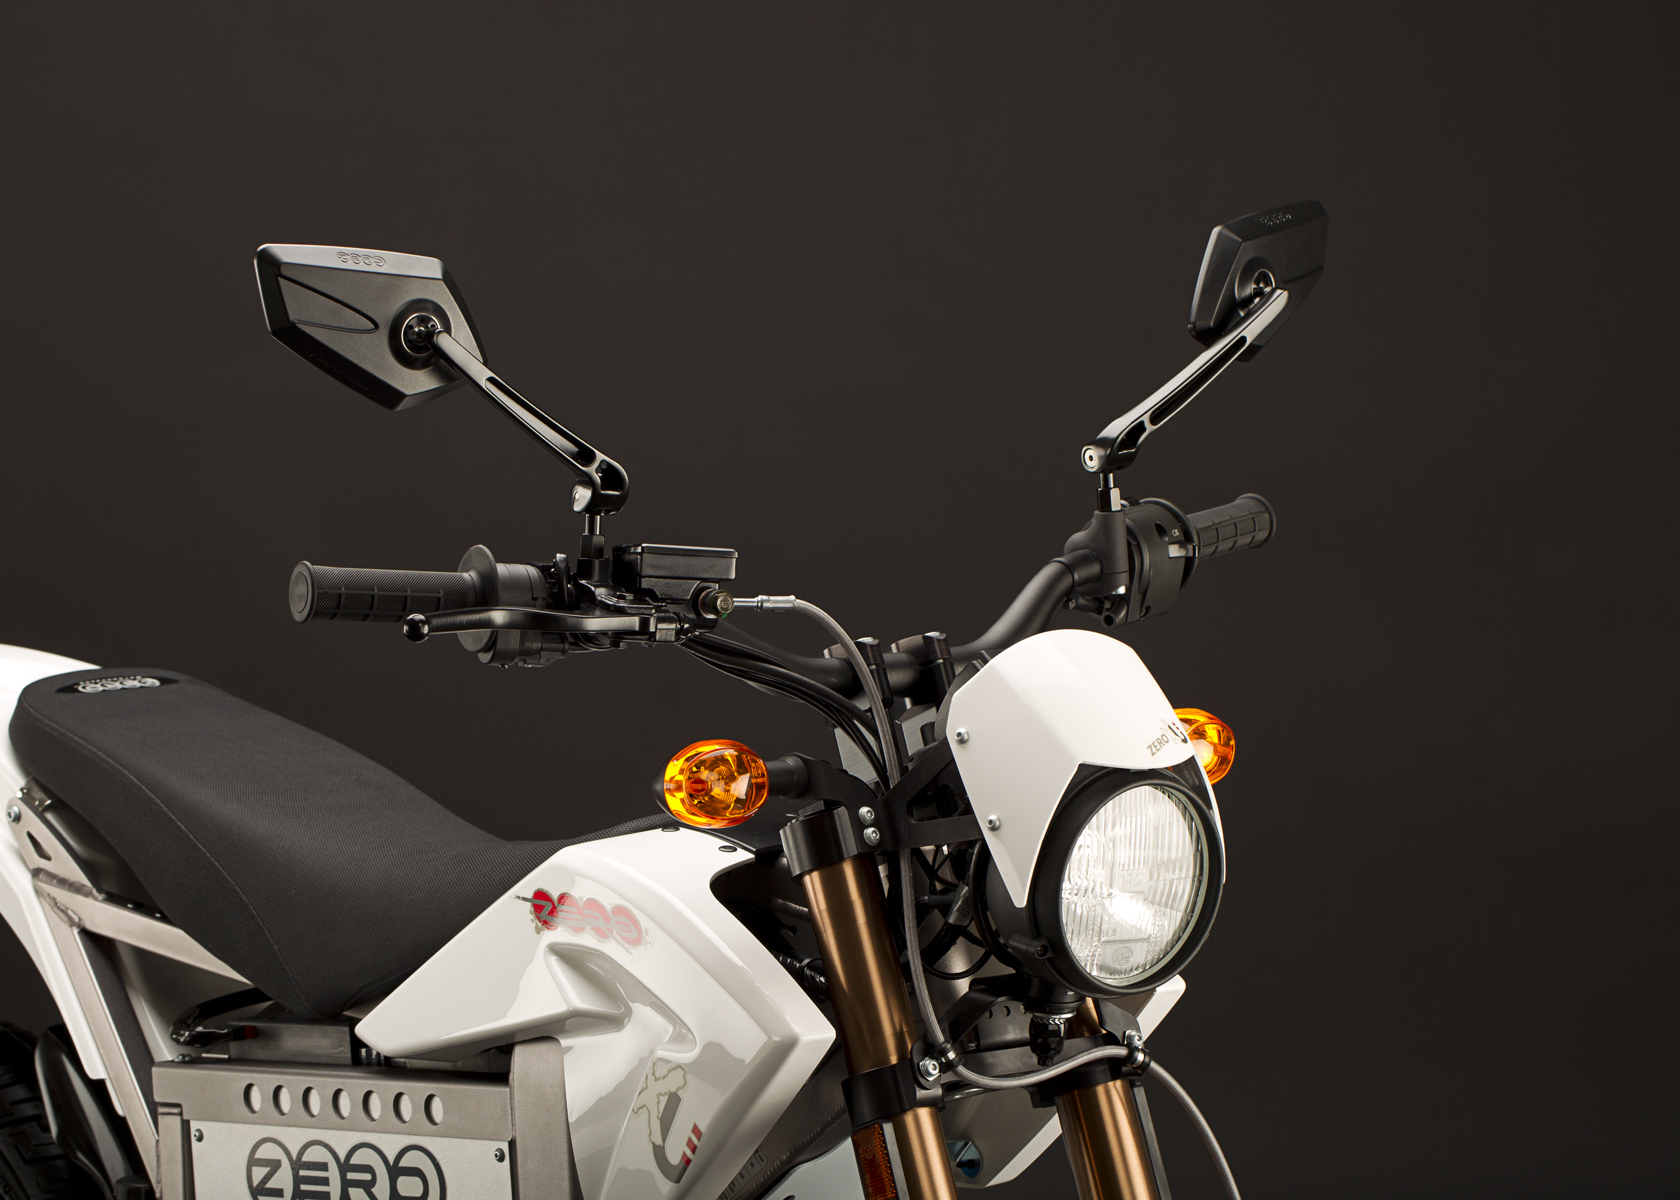 2011 Zero XU Electric Motorcycle: Turn Signal